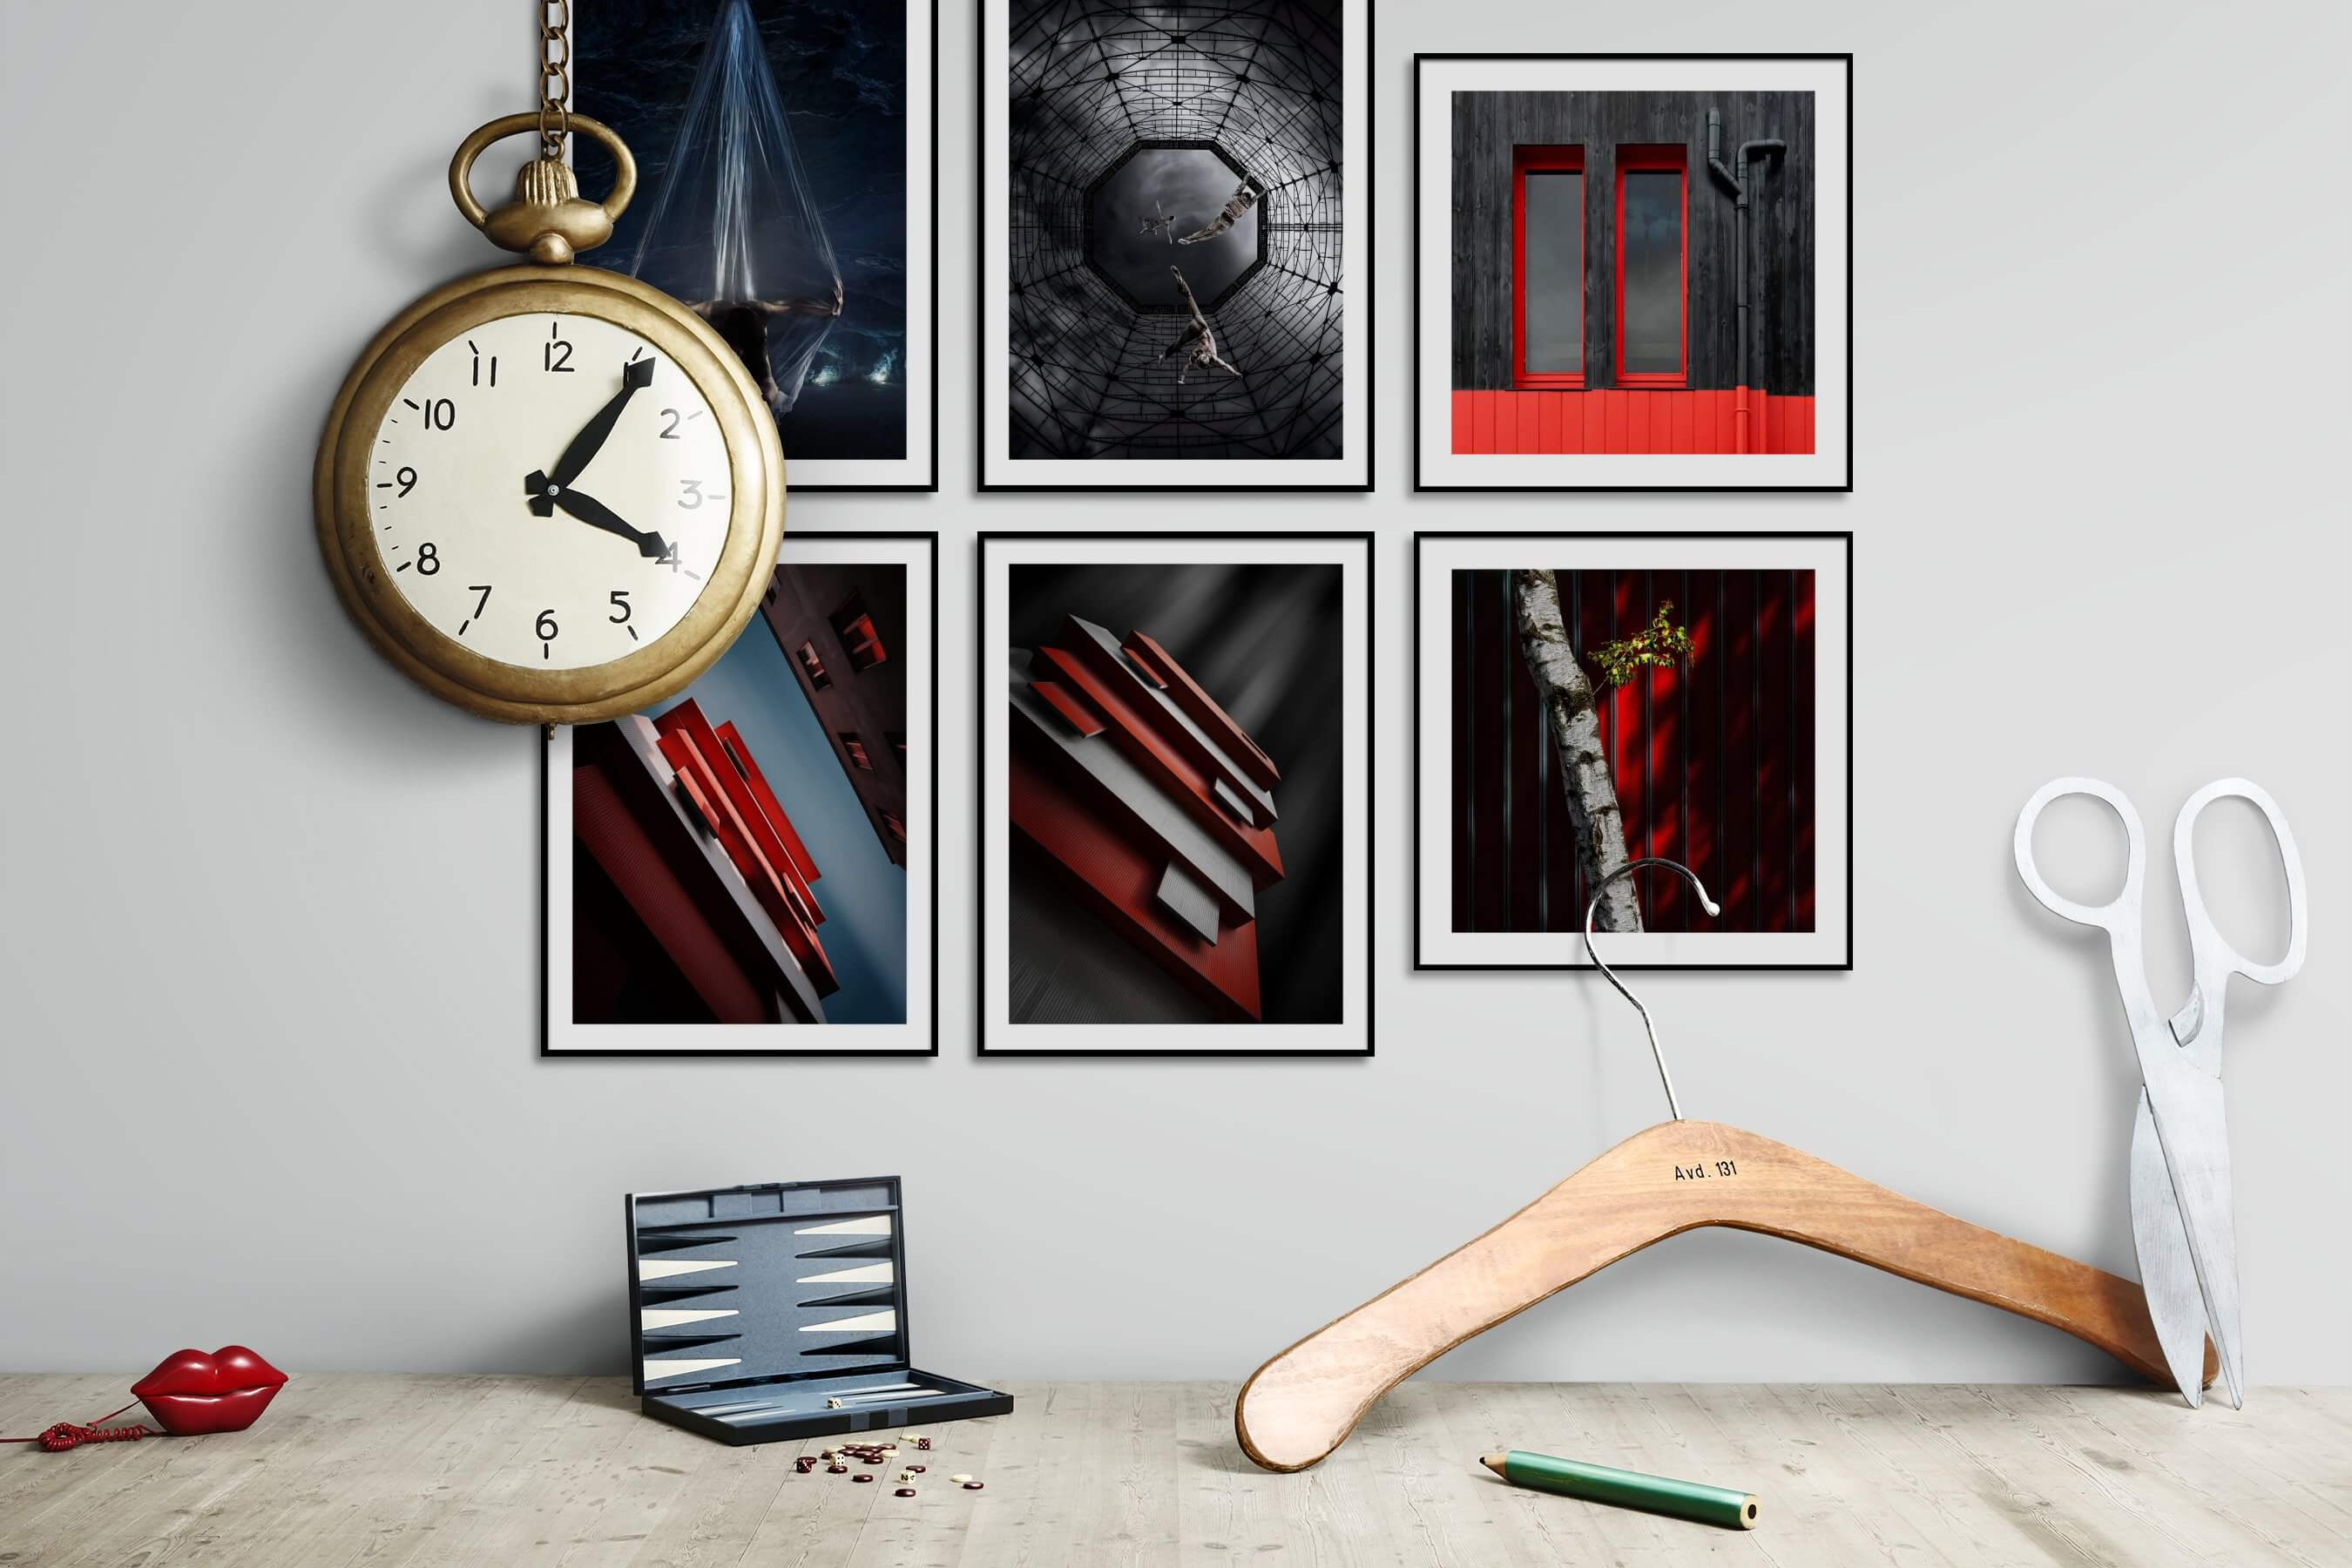 Gallery wall idea with six framed pictures arranged on a wall depicting Artsy, For the Moderate, and City Life